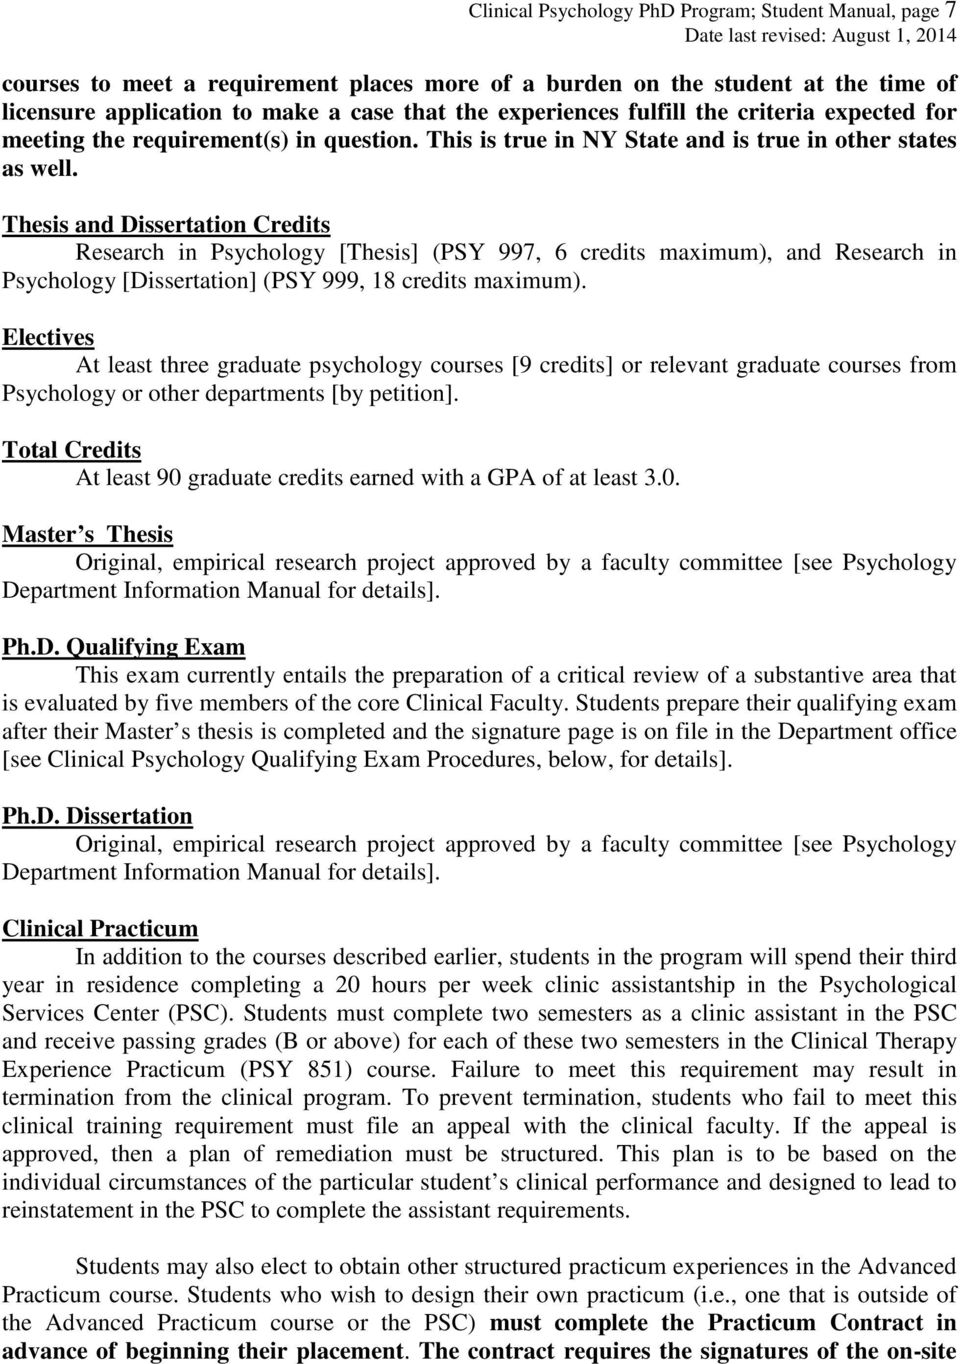 Thesis and Dissertation Credits Research in Psychology [Thesis] (PSY 997, 6 credits maximum), and Research in Psychology [Dissertation] (PSY 999, 18 credits maximum).